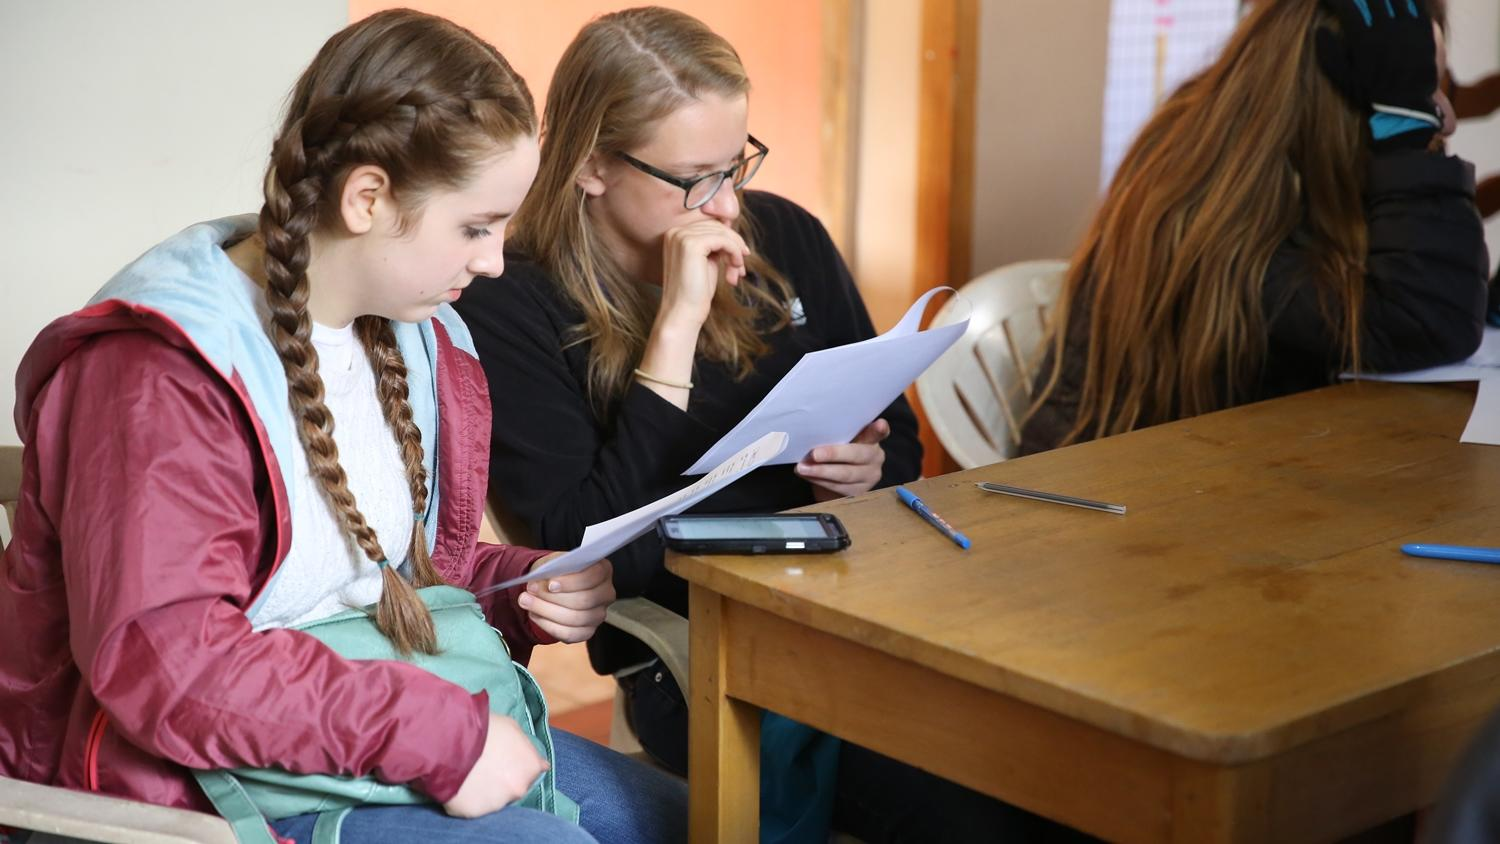 Projects Abroad volunteers learning Spanish in Peru